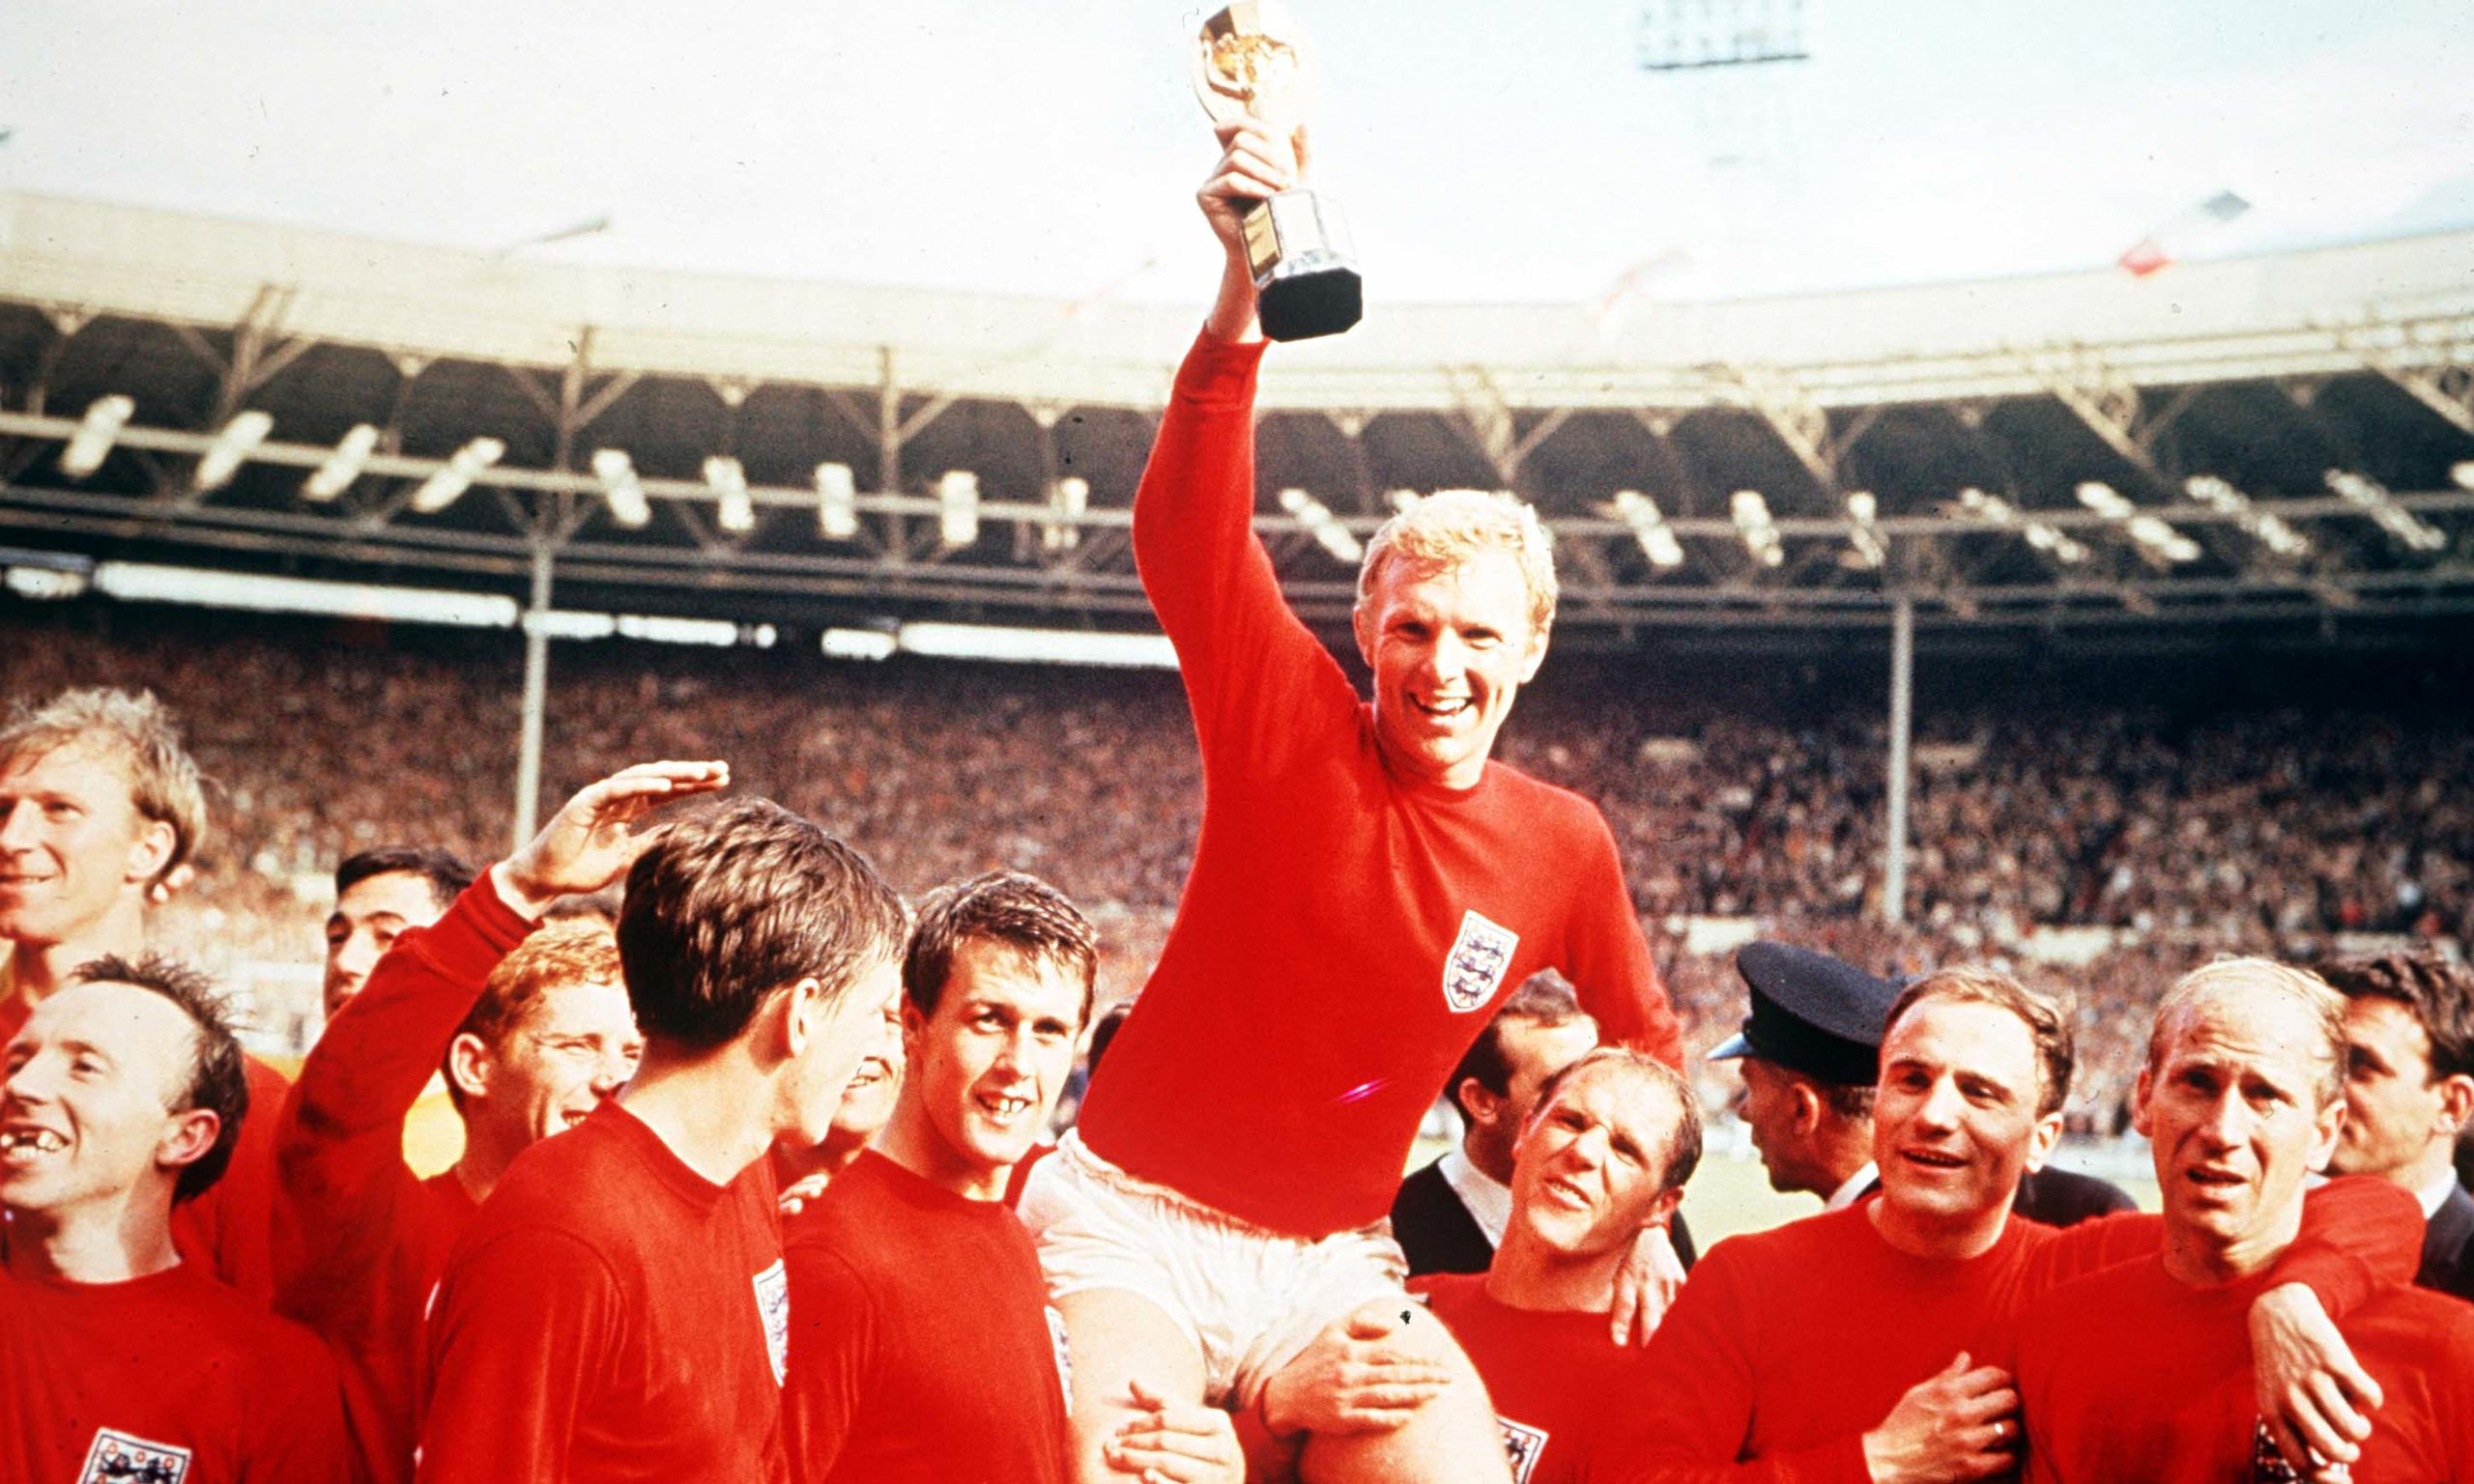 England 1966 World Cup Final